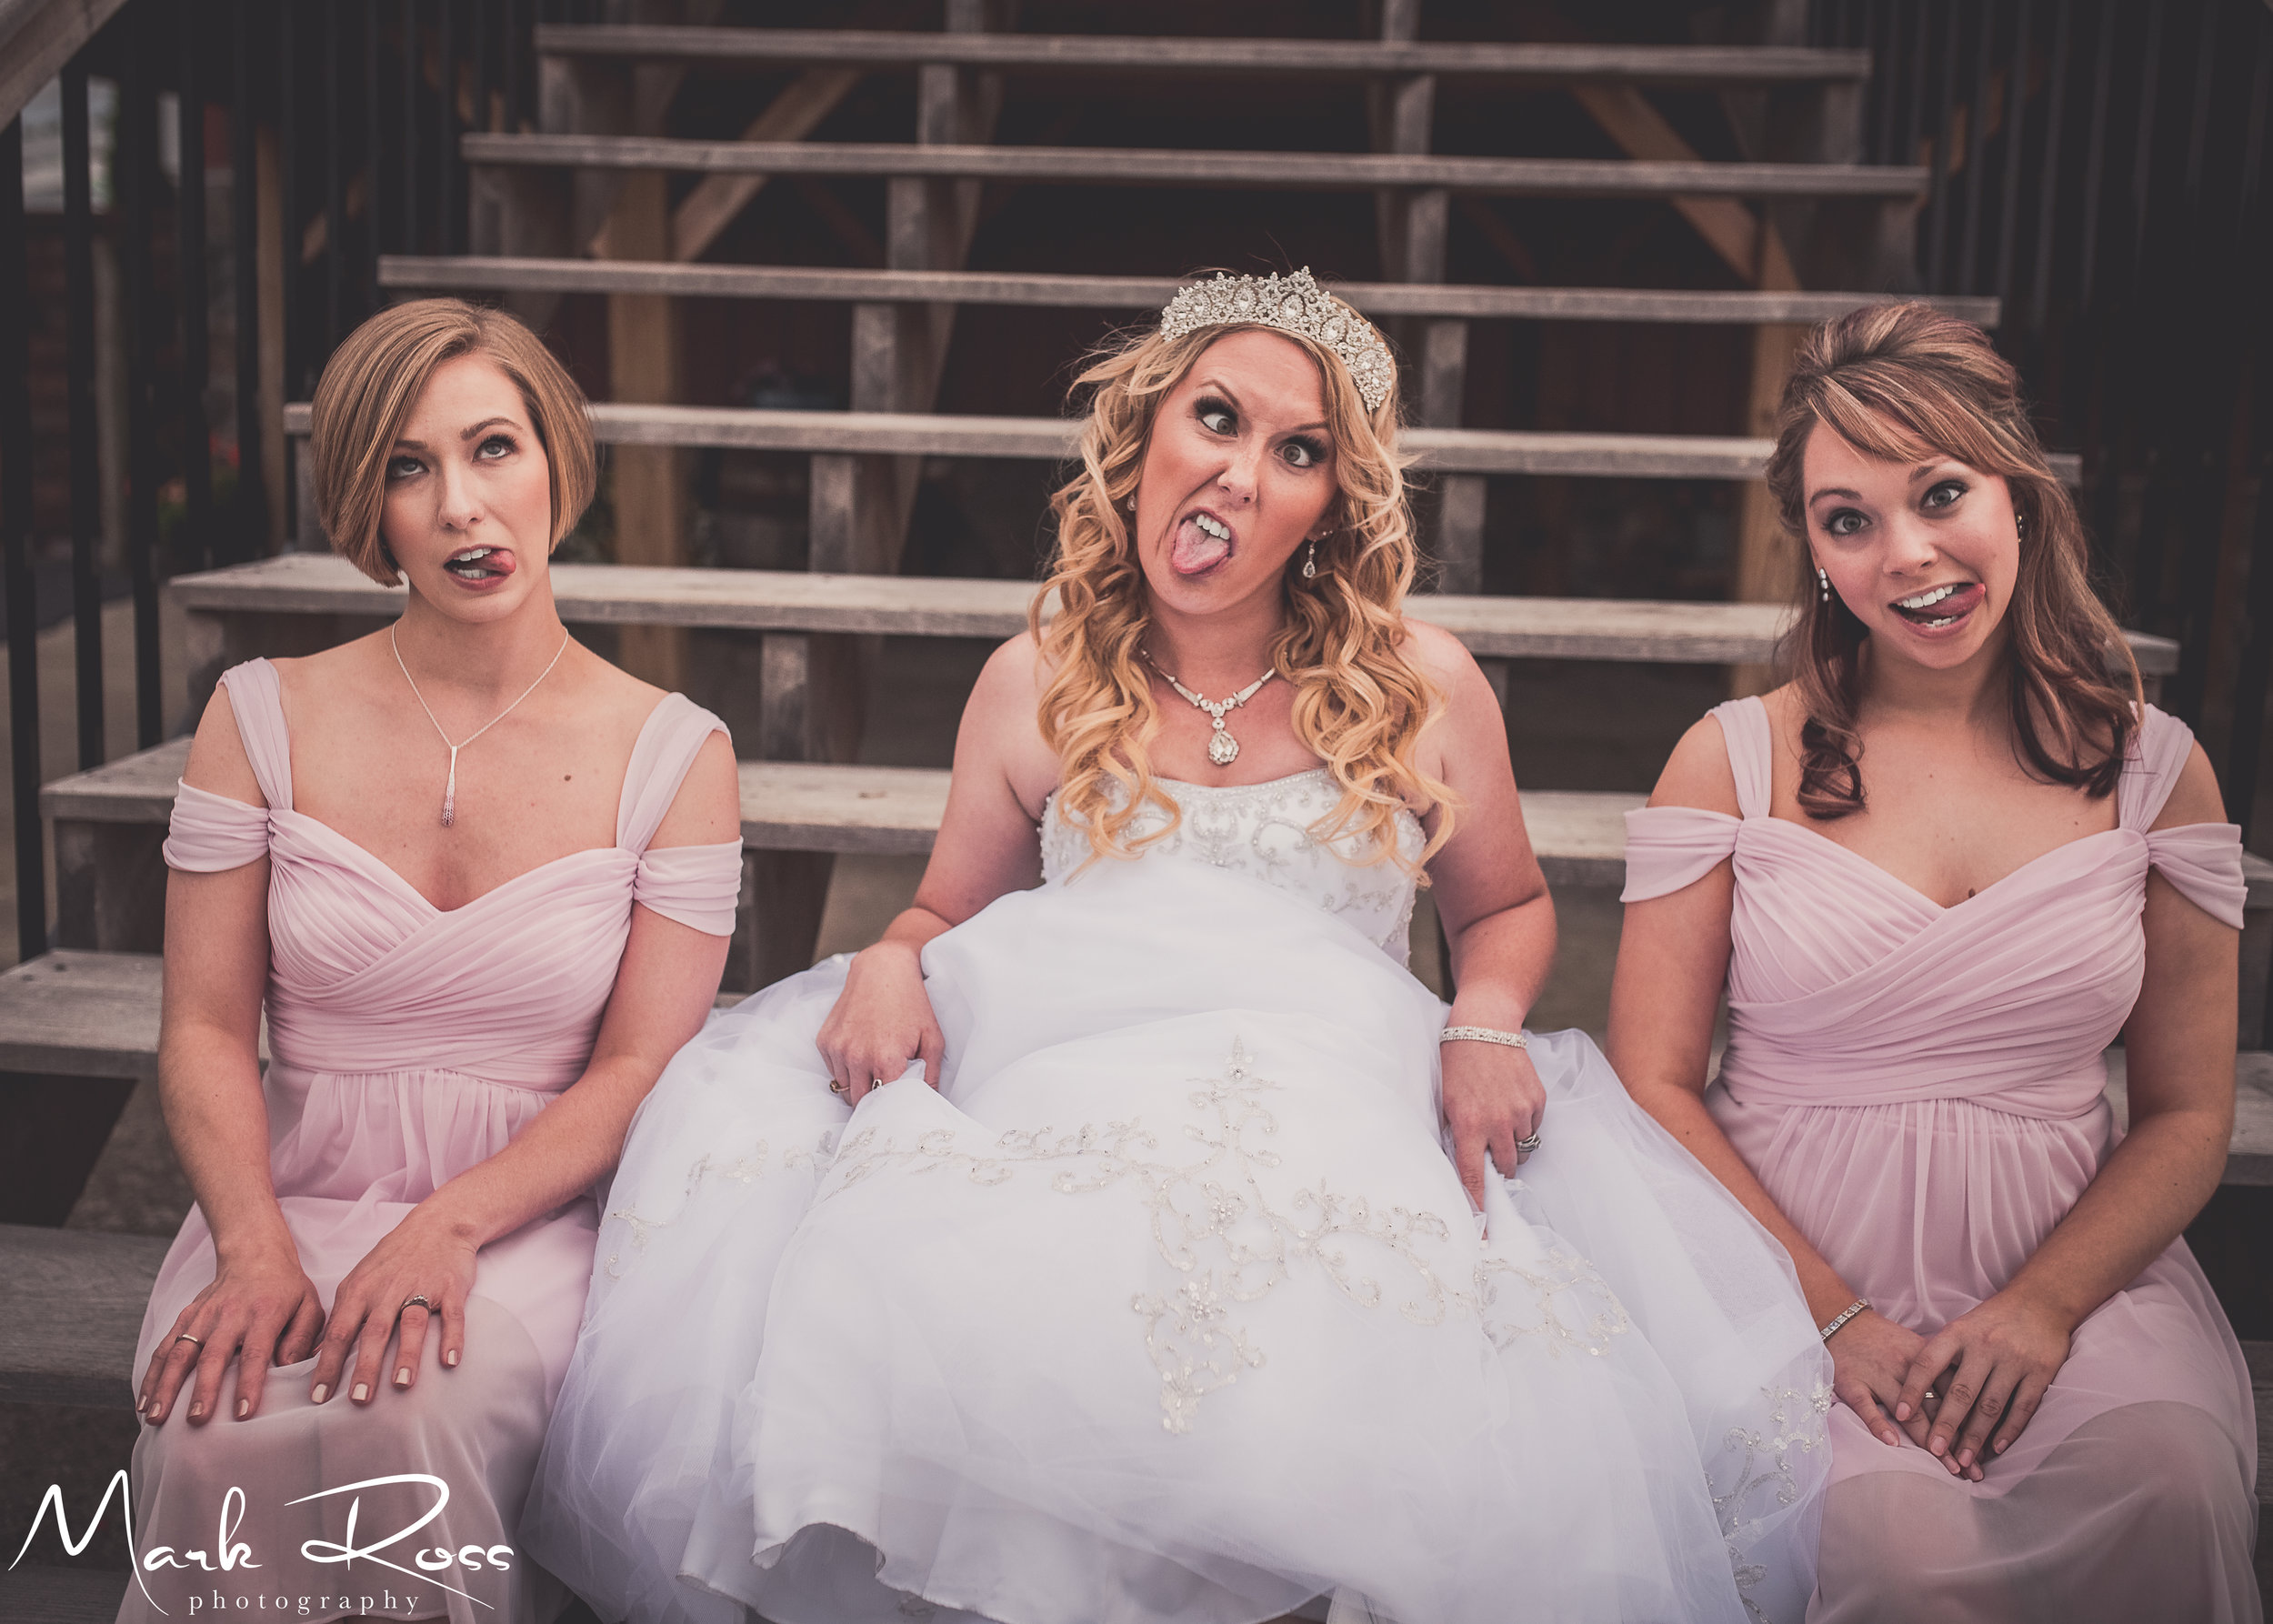 The bride and her fun bridesmaids.